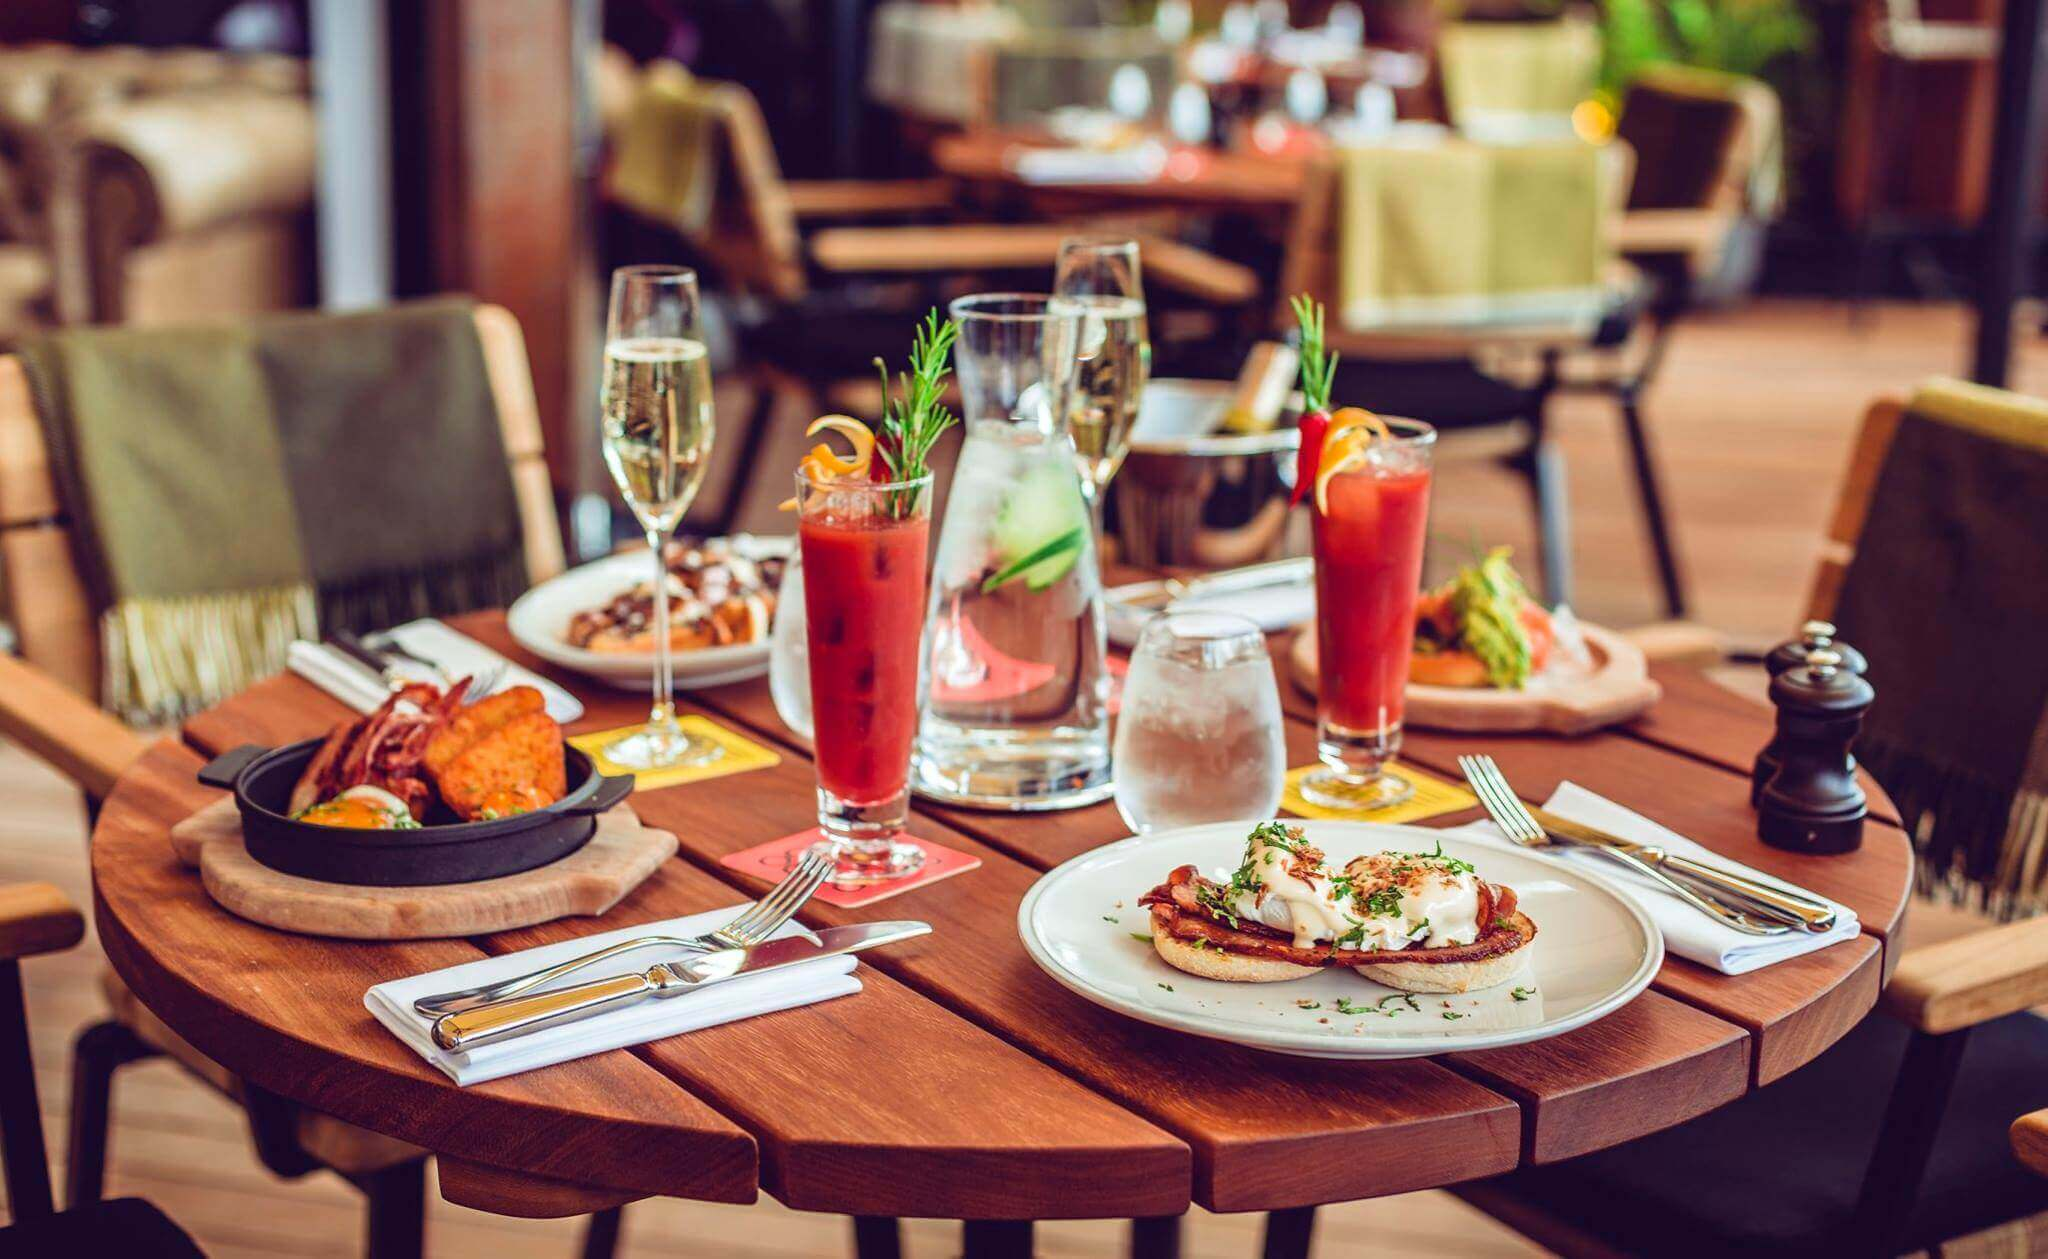 Bottomless Brunch with Bloody Mary and Eggs Benedict at East 59th Leeds